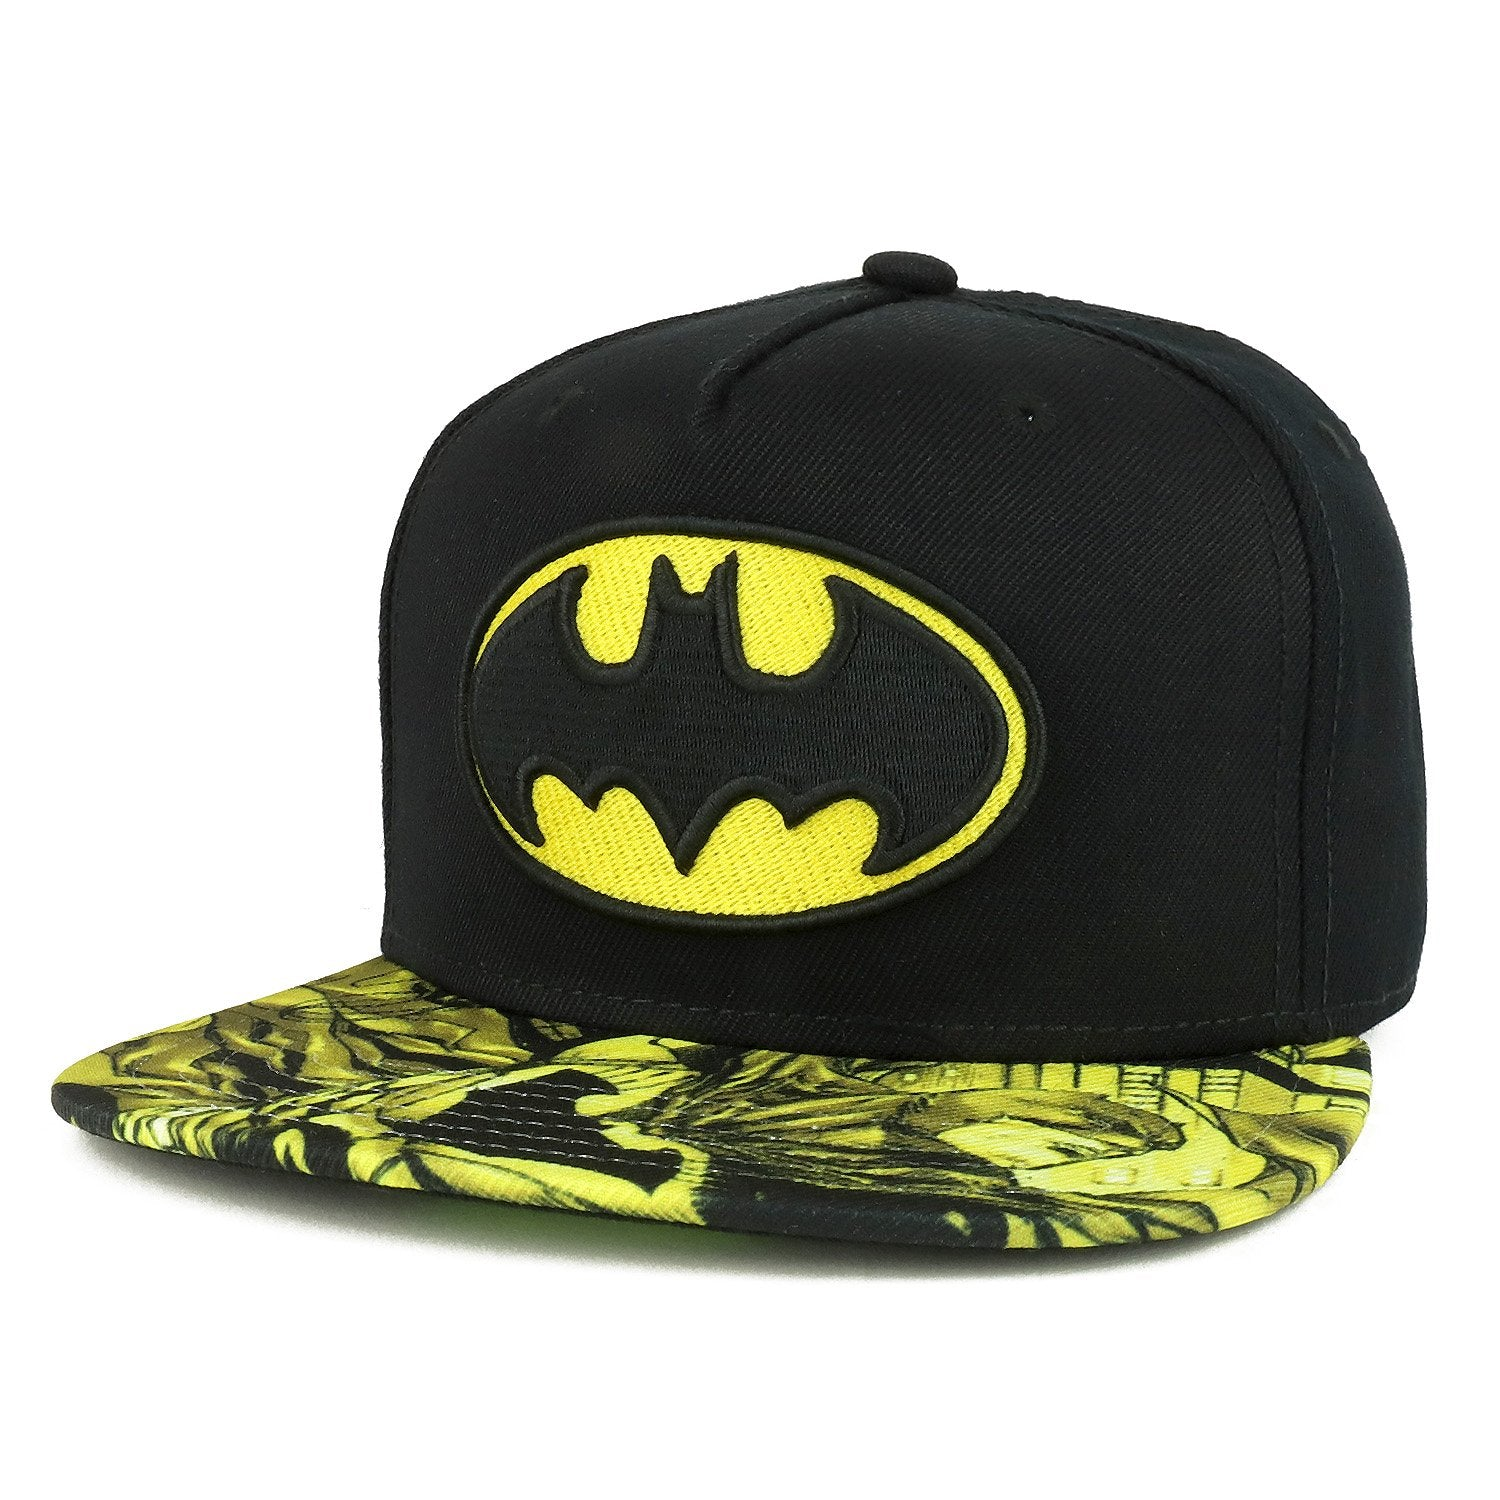 06d741197 Armycrew Youth Size Kid's Batman Logo Design Embroidered Flatbill Snap -  Armycrew.com